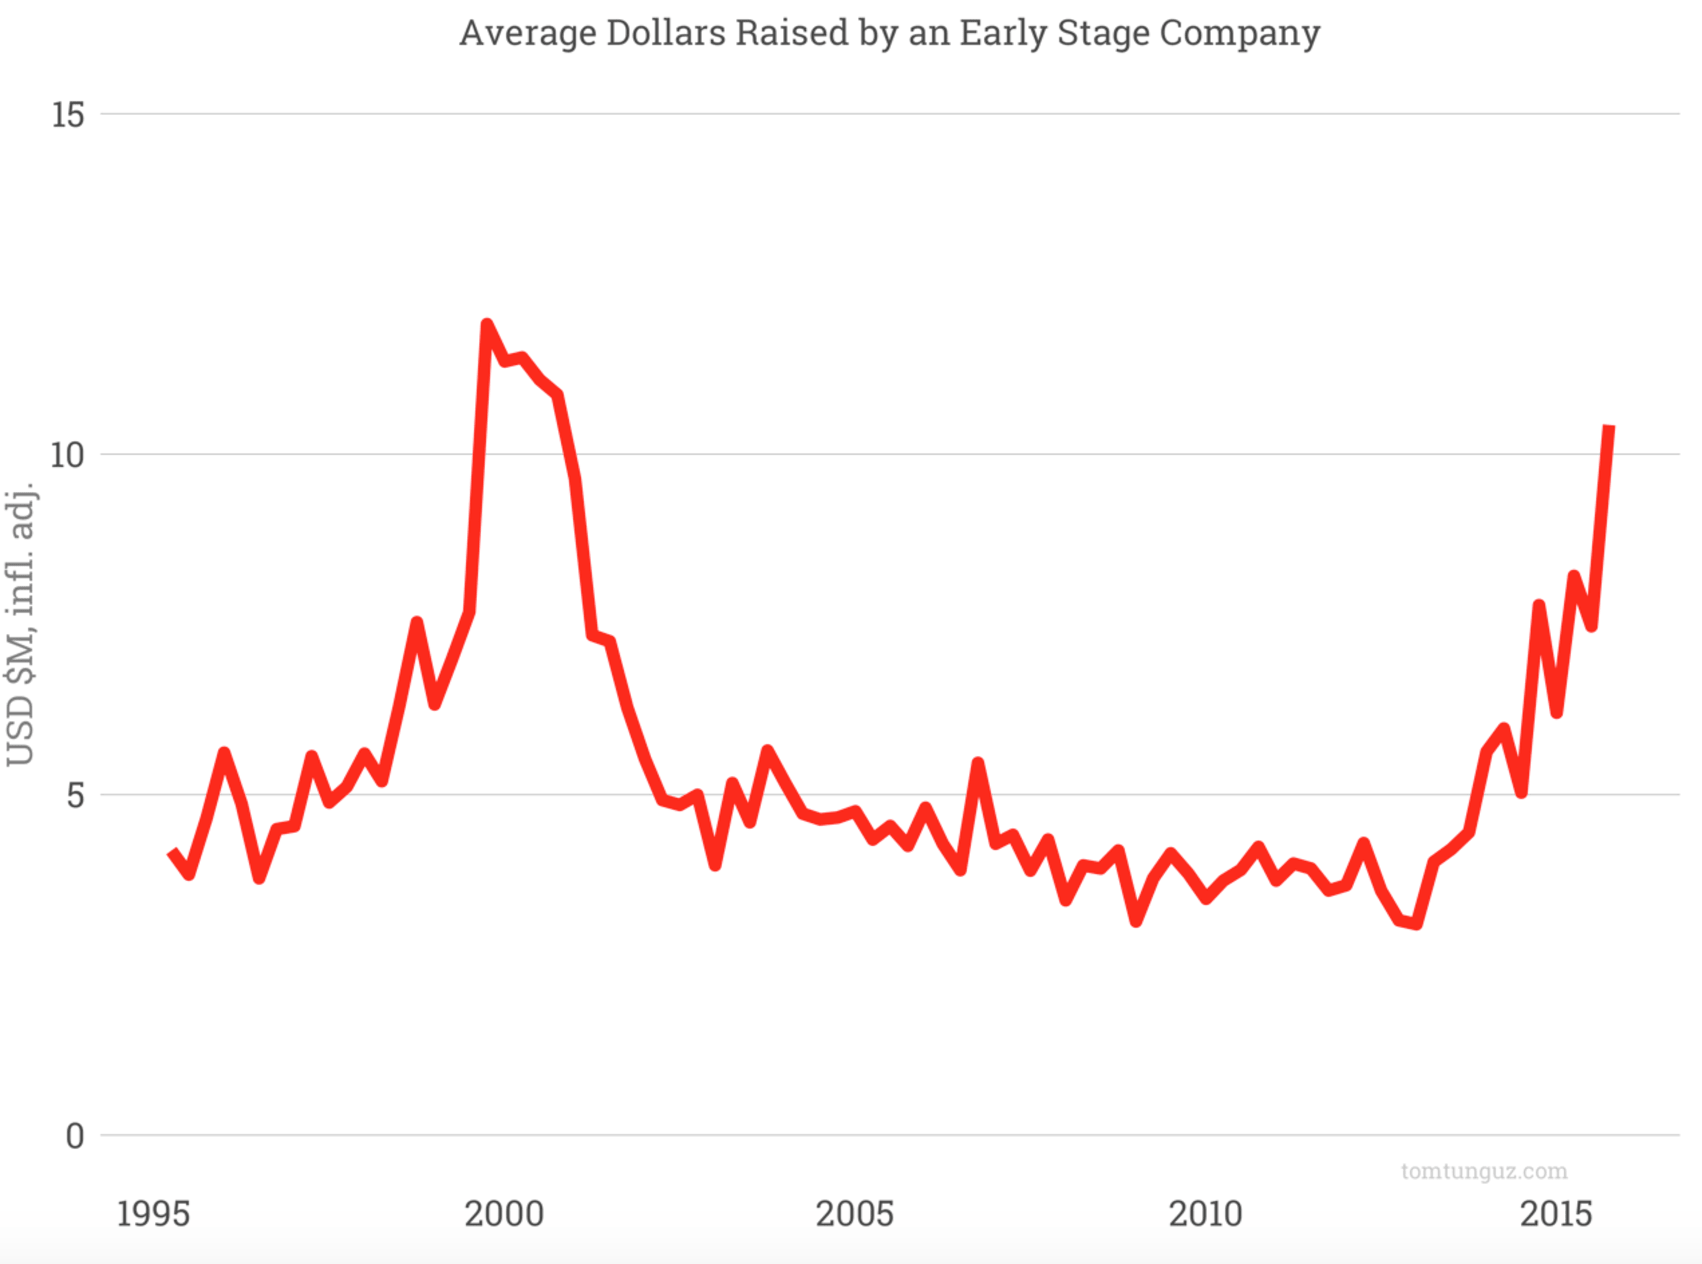 Average earnings raised by early stage companies from 1995 to 2015